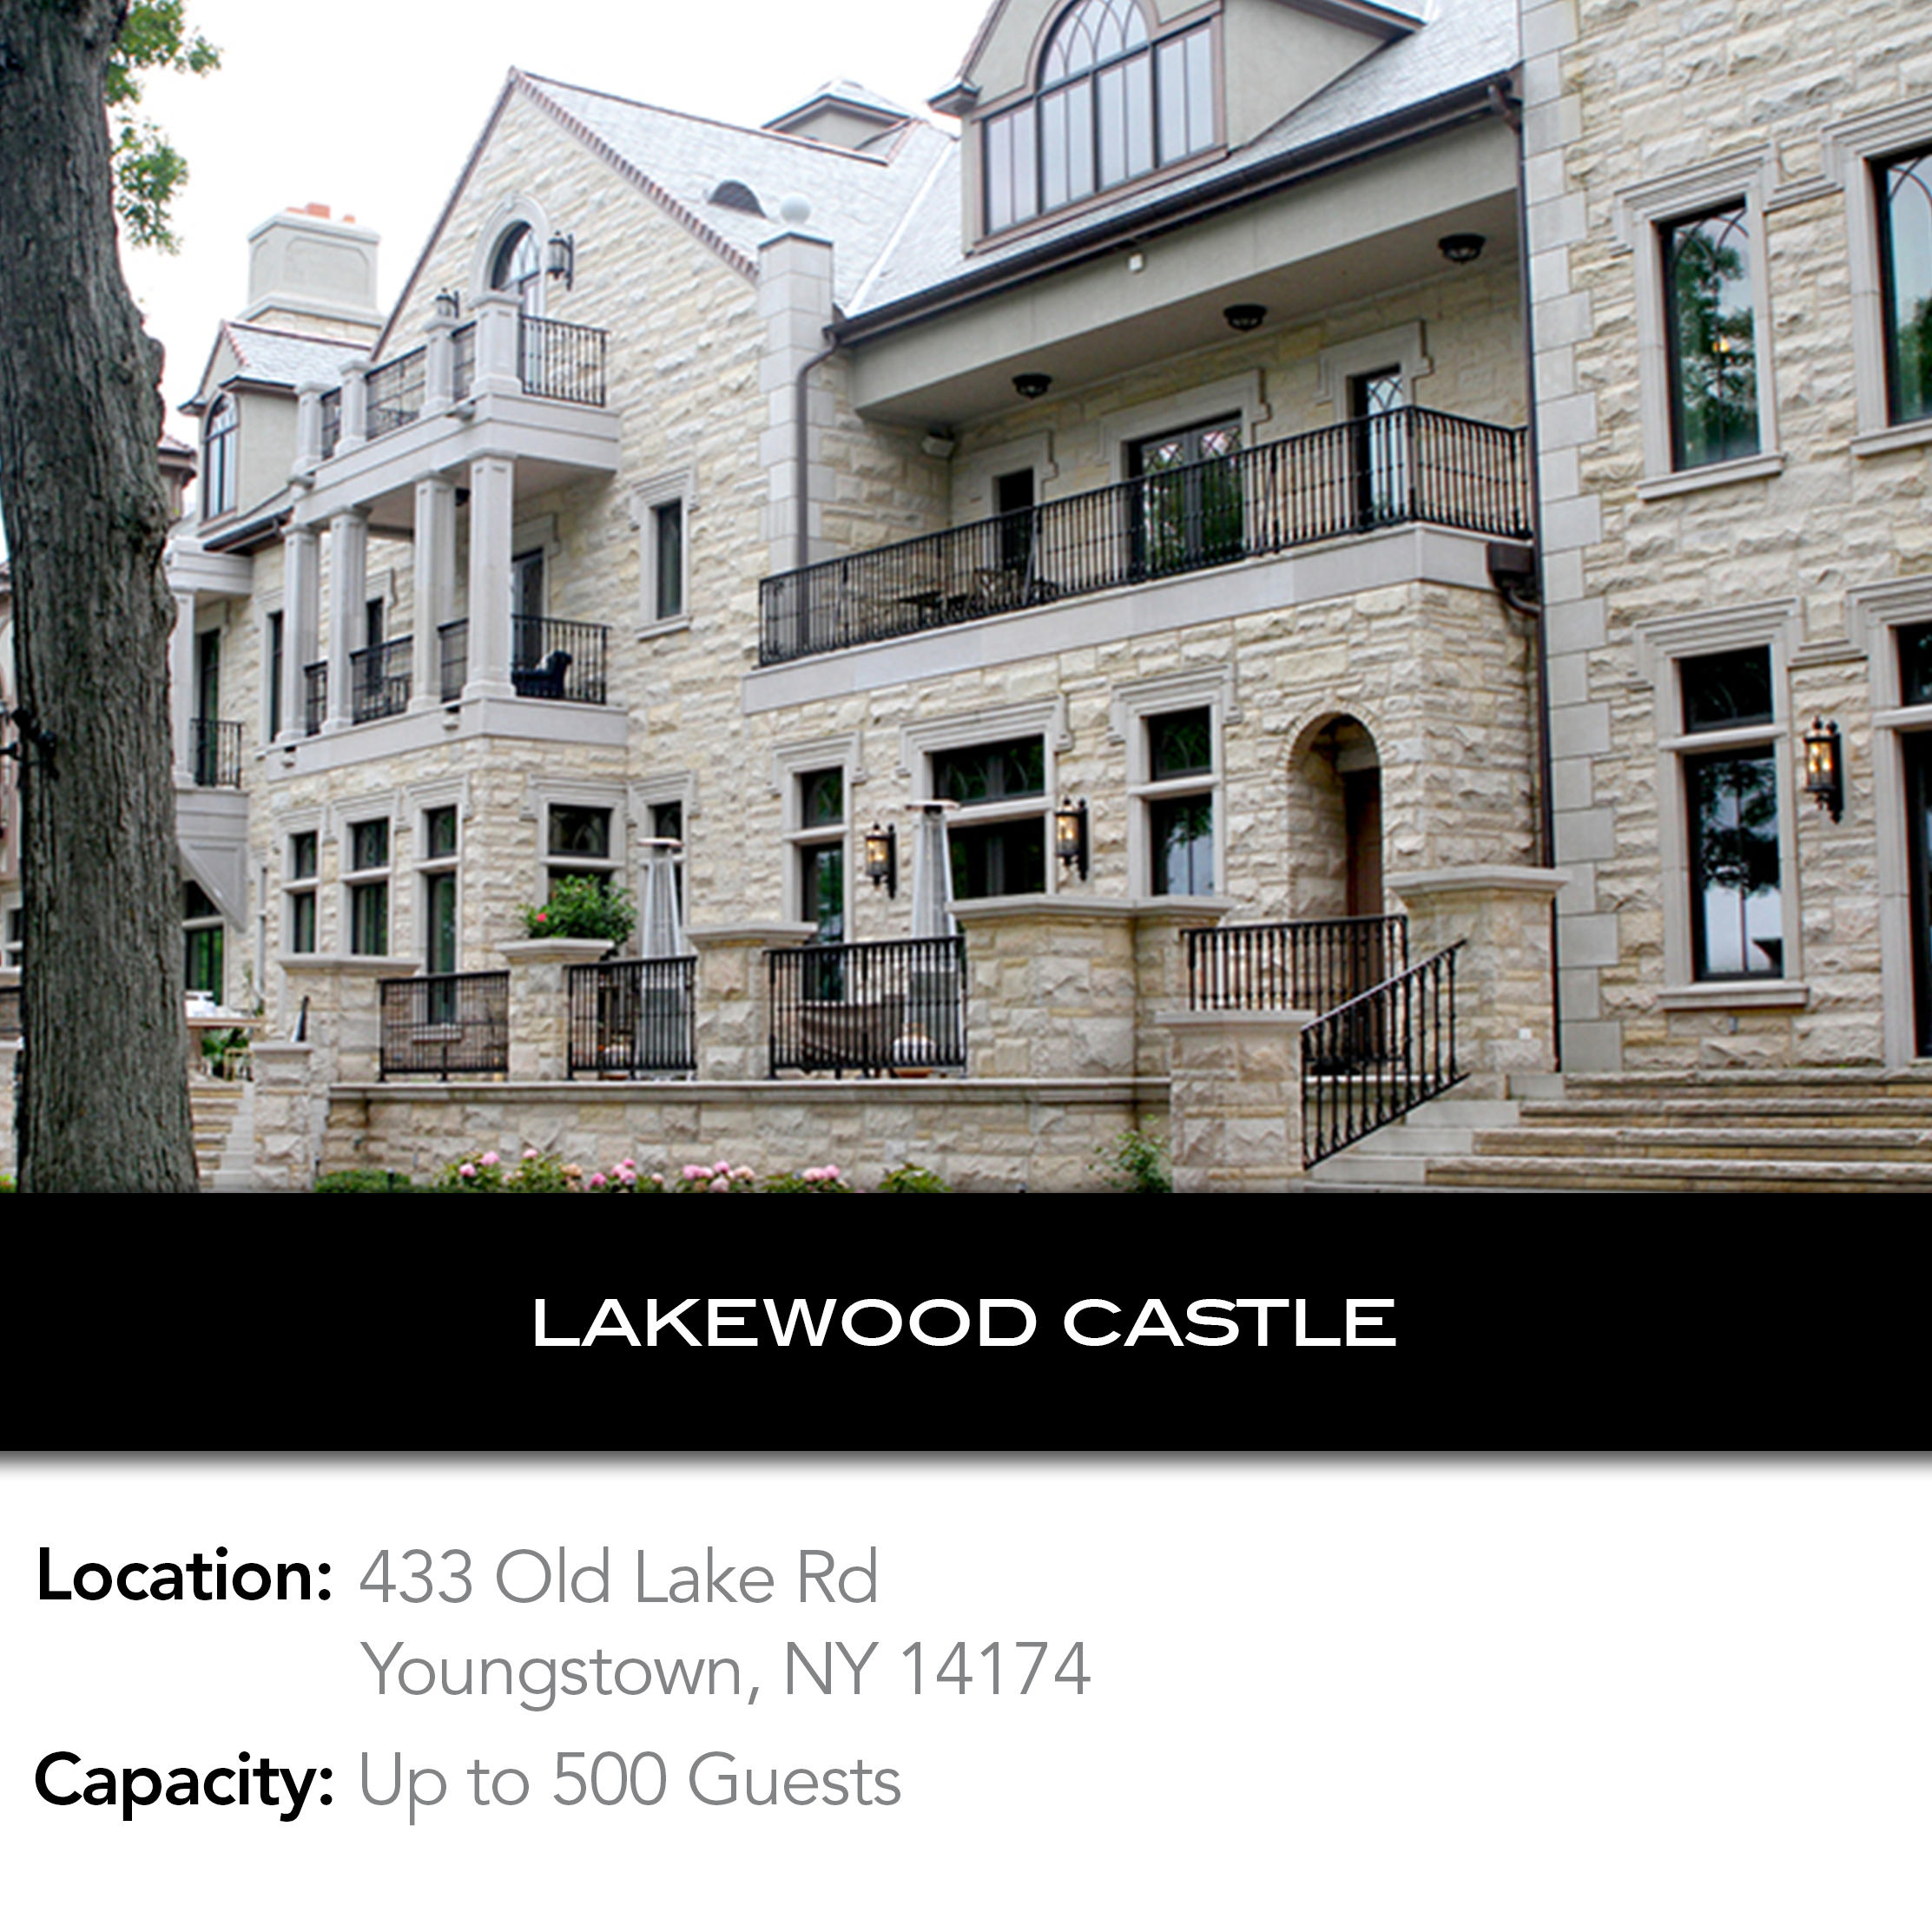 Lakewood Castle